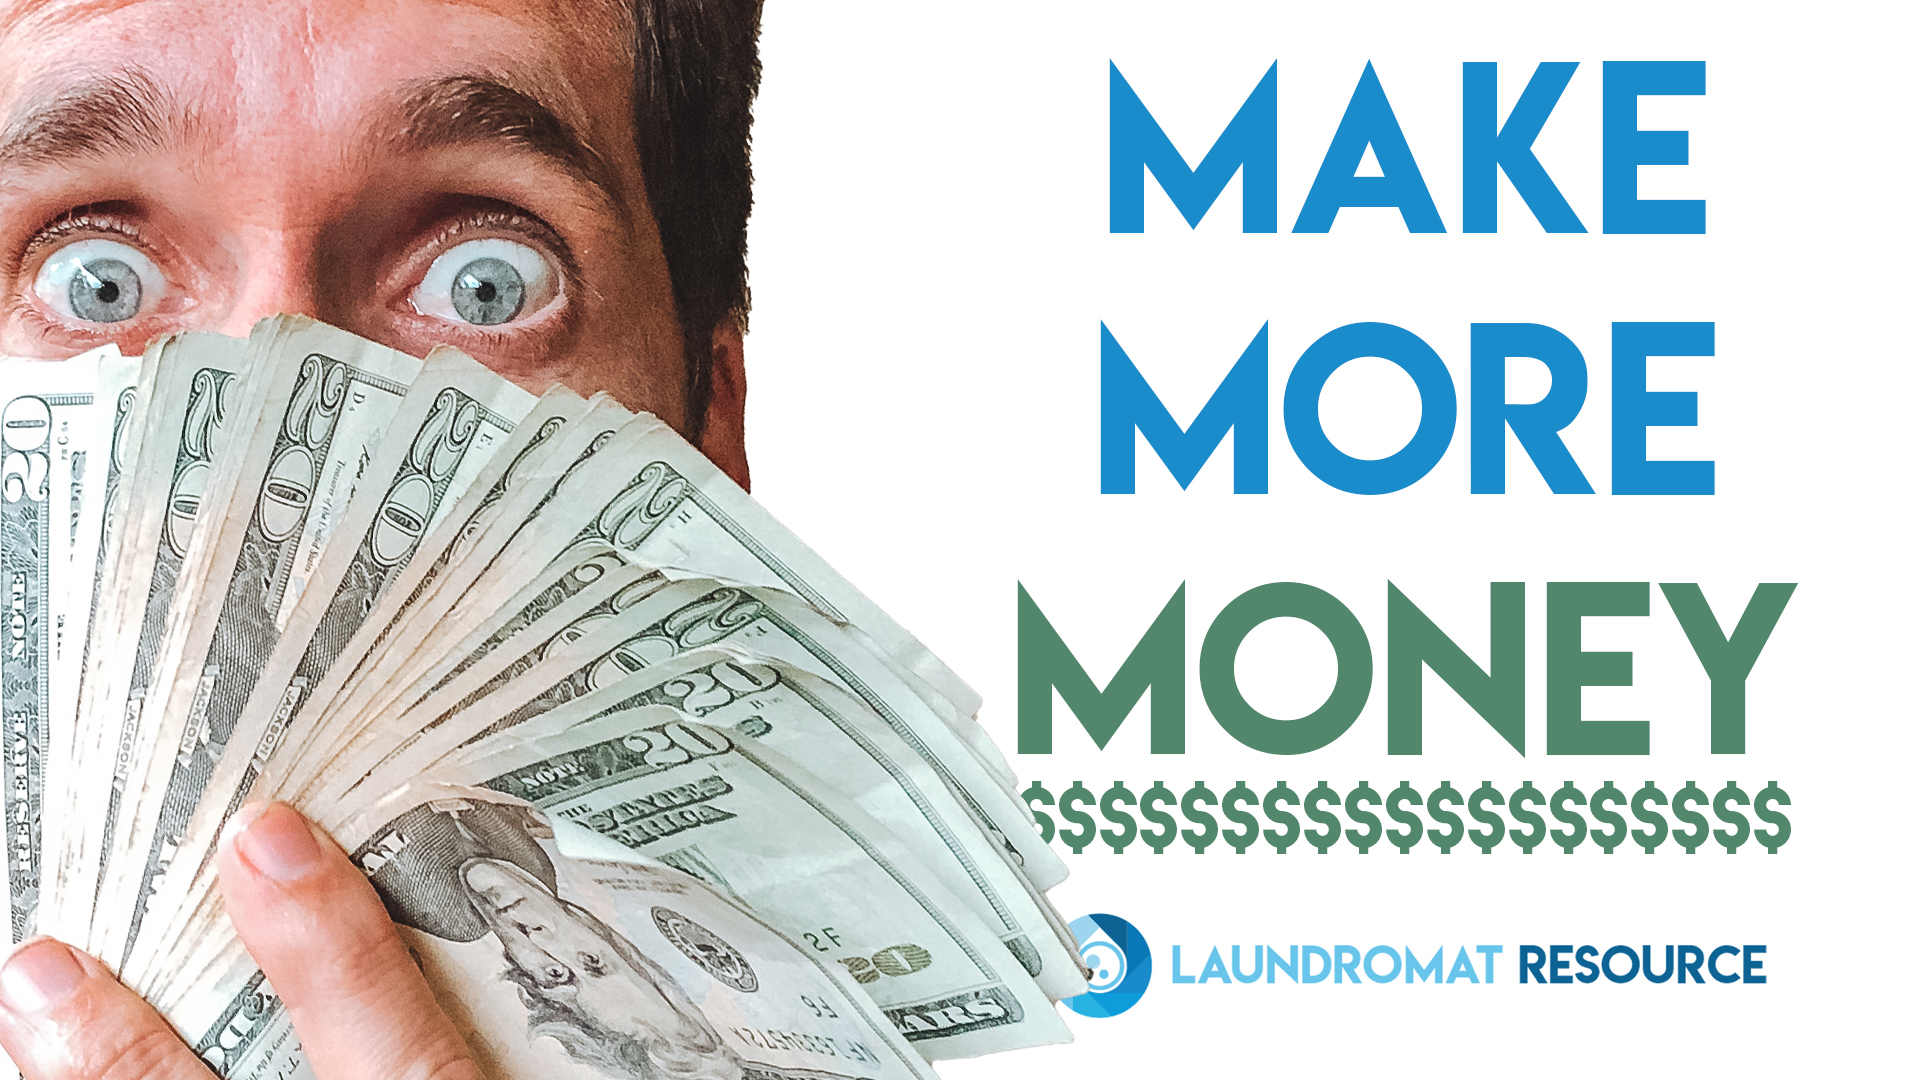 How to Make Your Laundromat Worth More Money